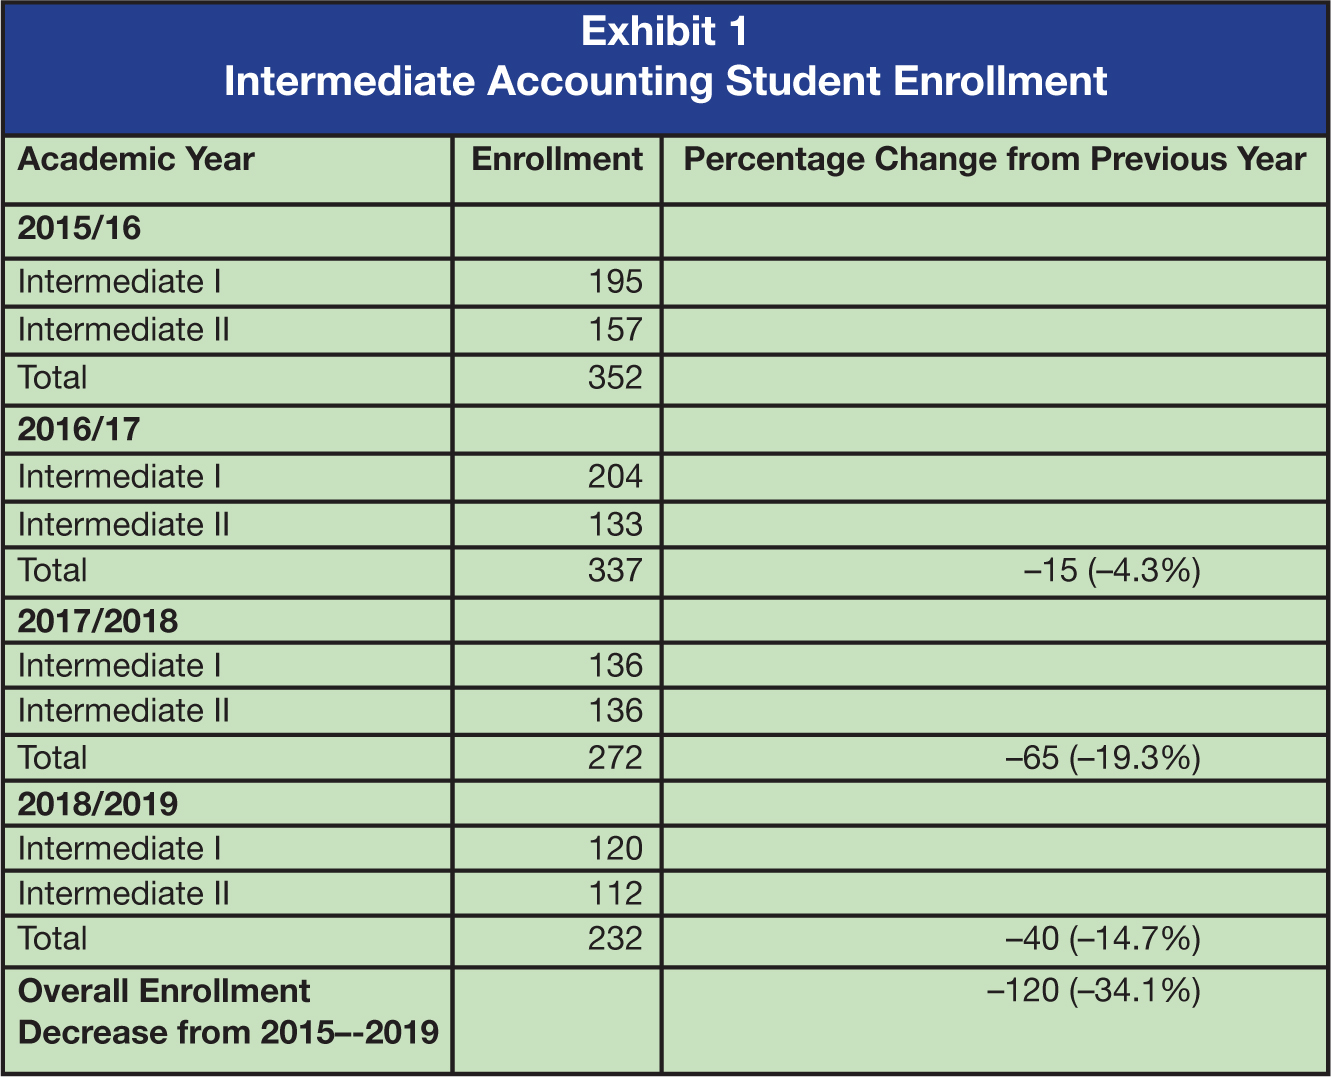 Academic Year Enrollment Percentage Change from Previous Year 2015/16 Intermediate I 195 Intermediate II 157 Total 352 2016/17 Intermediate I 204 Intermediate II 133 Total 337 –15 (–4.3%) 2017/2018 Intermediate I 136 Intermediate II 136 Total 272 –65 (–19.3%) 2018/2019 Intermediate I 120 Intermediate II 112 Total 232 –40 (–14.7%) Overall Enrollment Decrease from 2015–-2019 –120 (–34.1%)